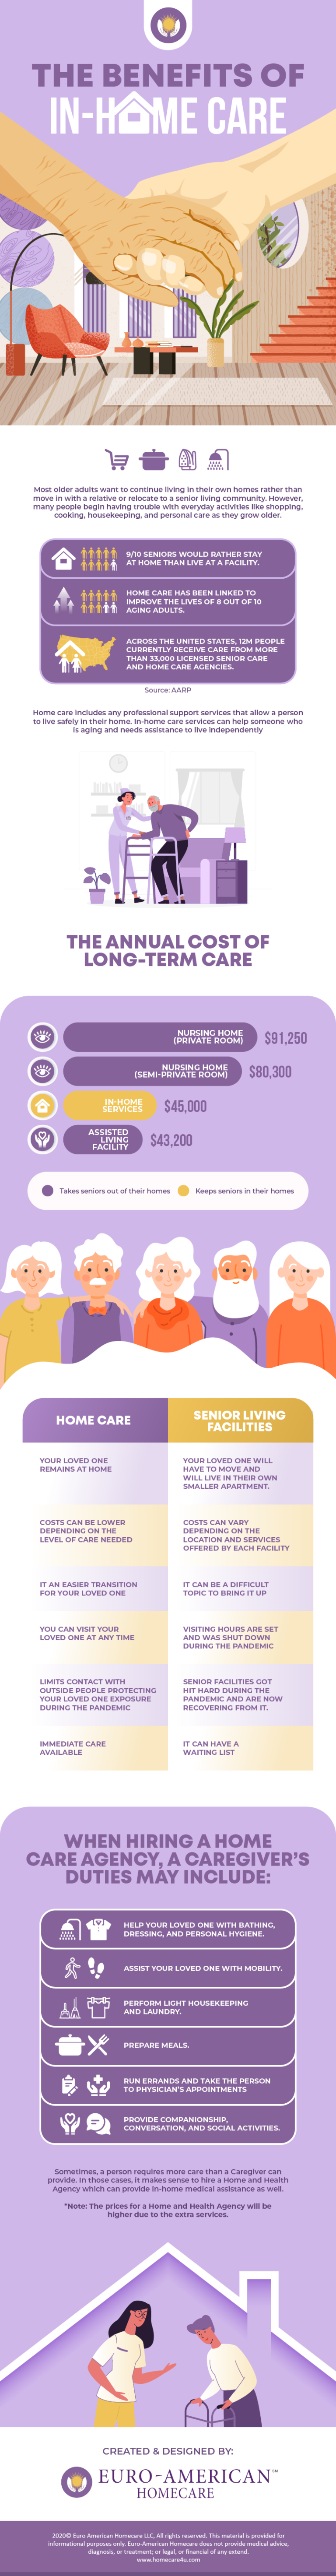 The-Benefits-of-In-Home-Care infographic